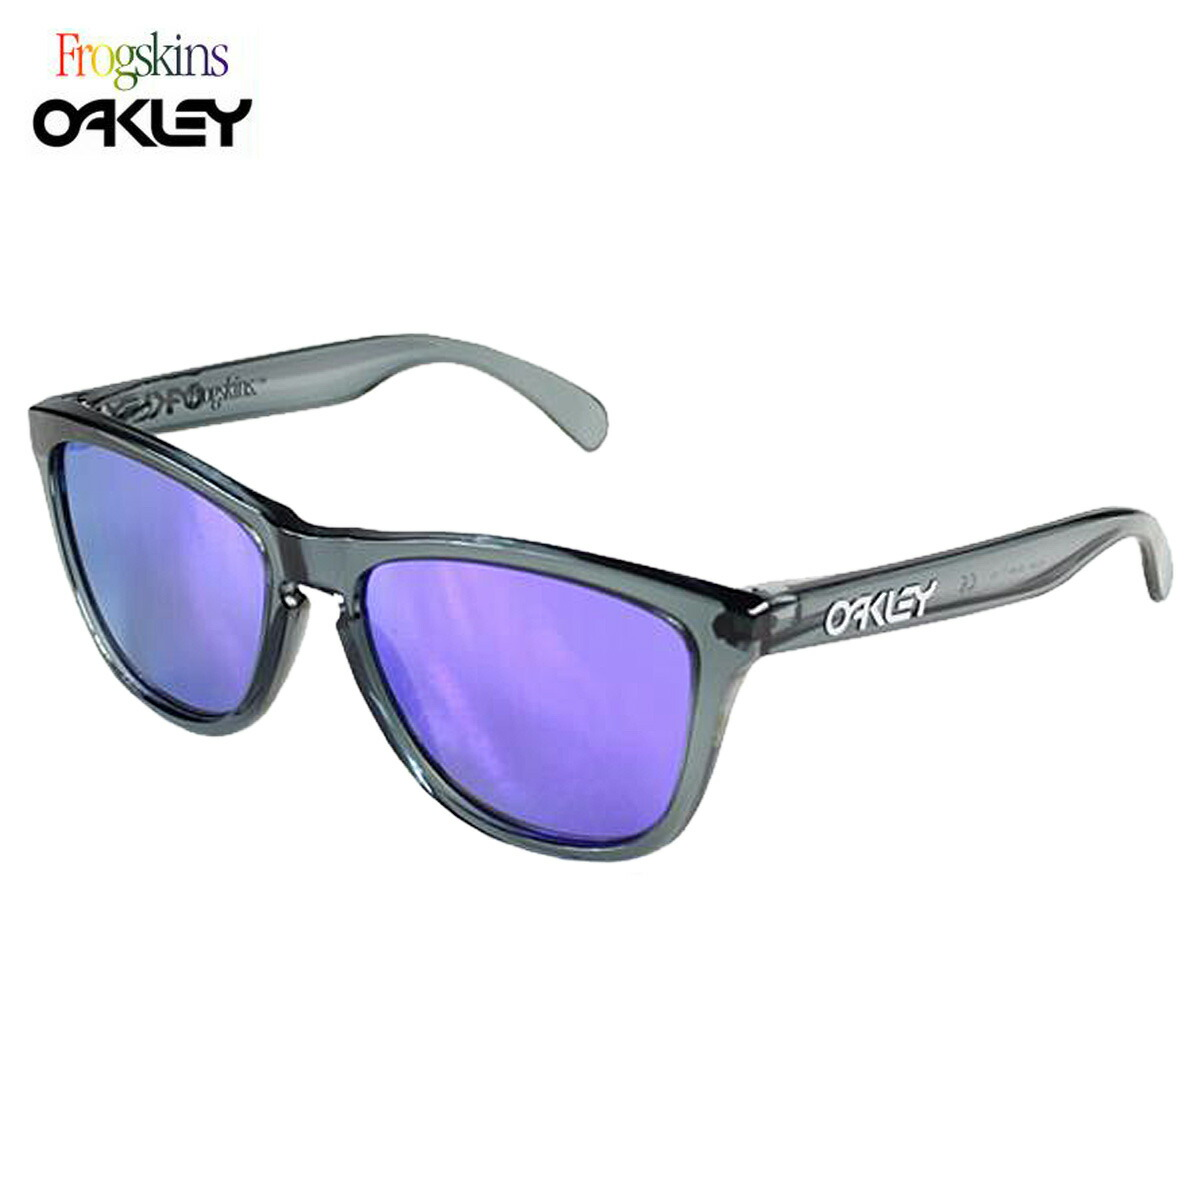 oakley sunglasses names  oakley oakley sunglasses 03 290 men women